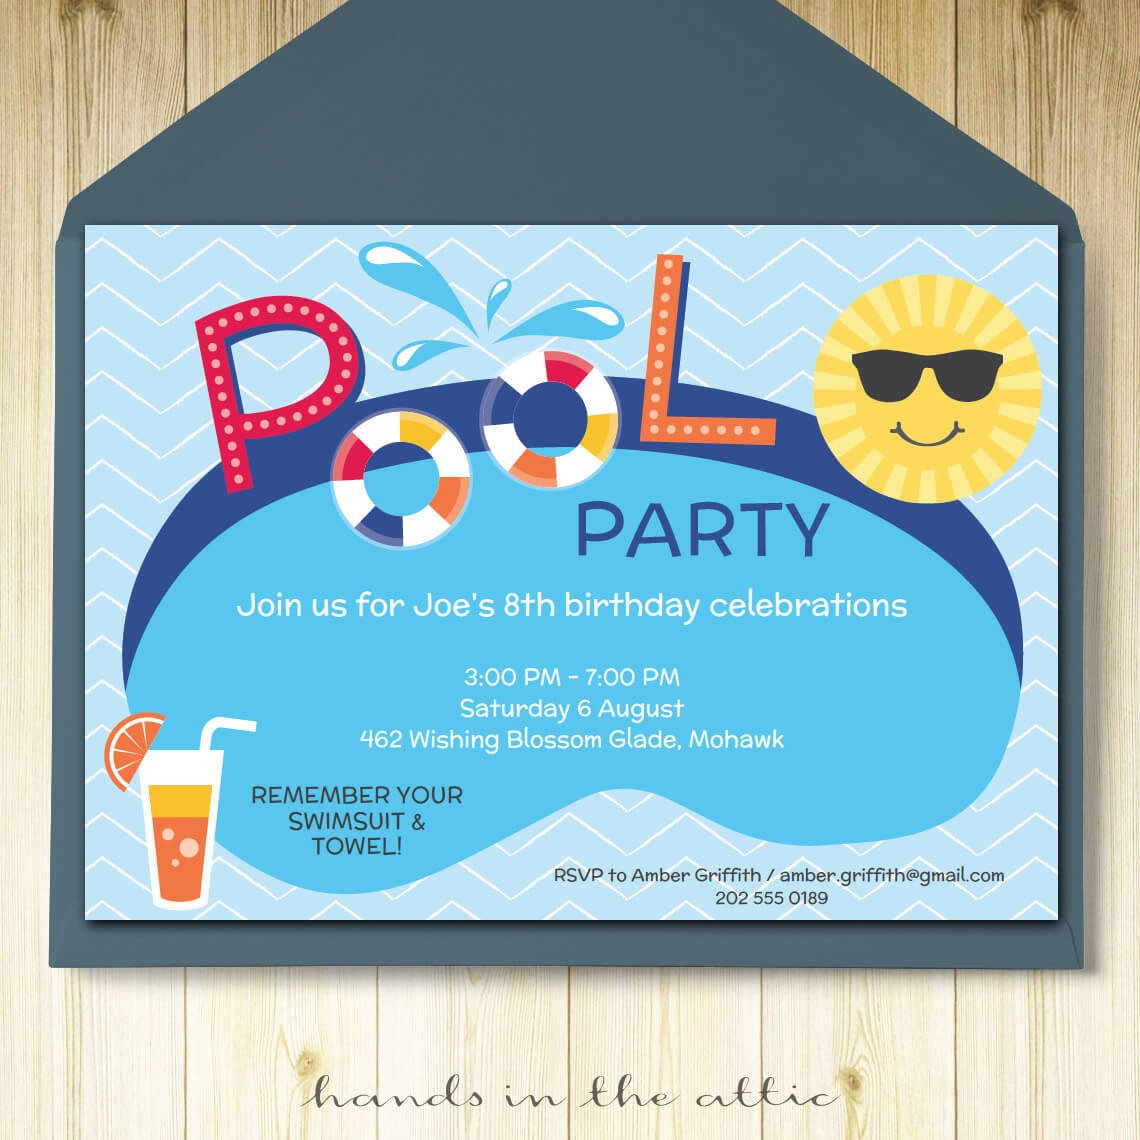 Pool Party Invitation Templates Pool Party Invitation Card Editable Template Party Printable